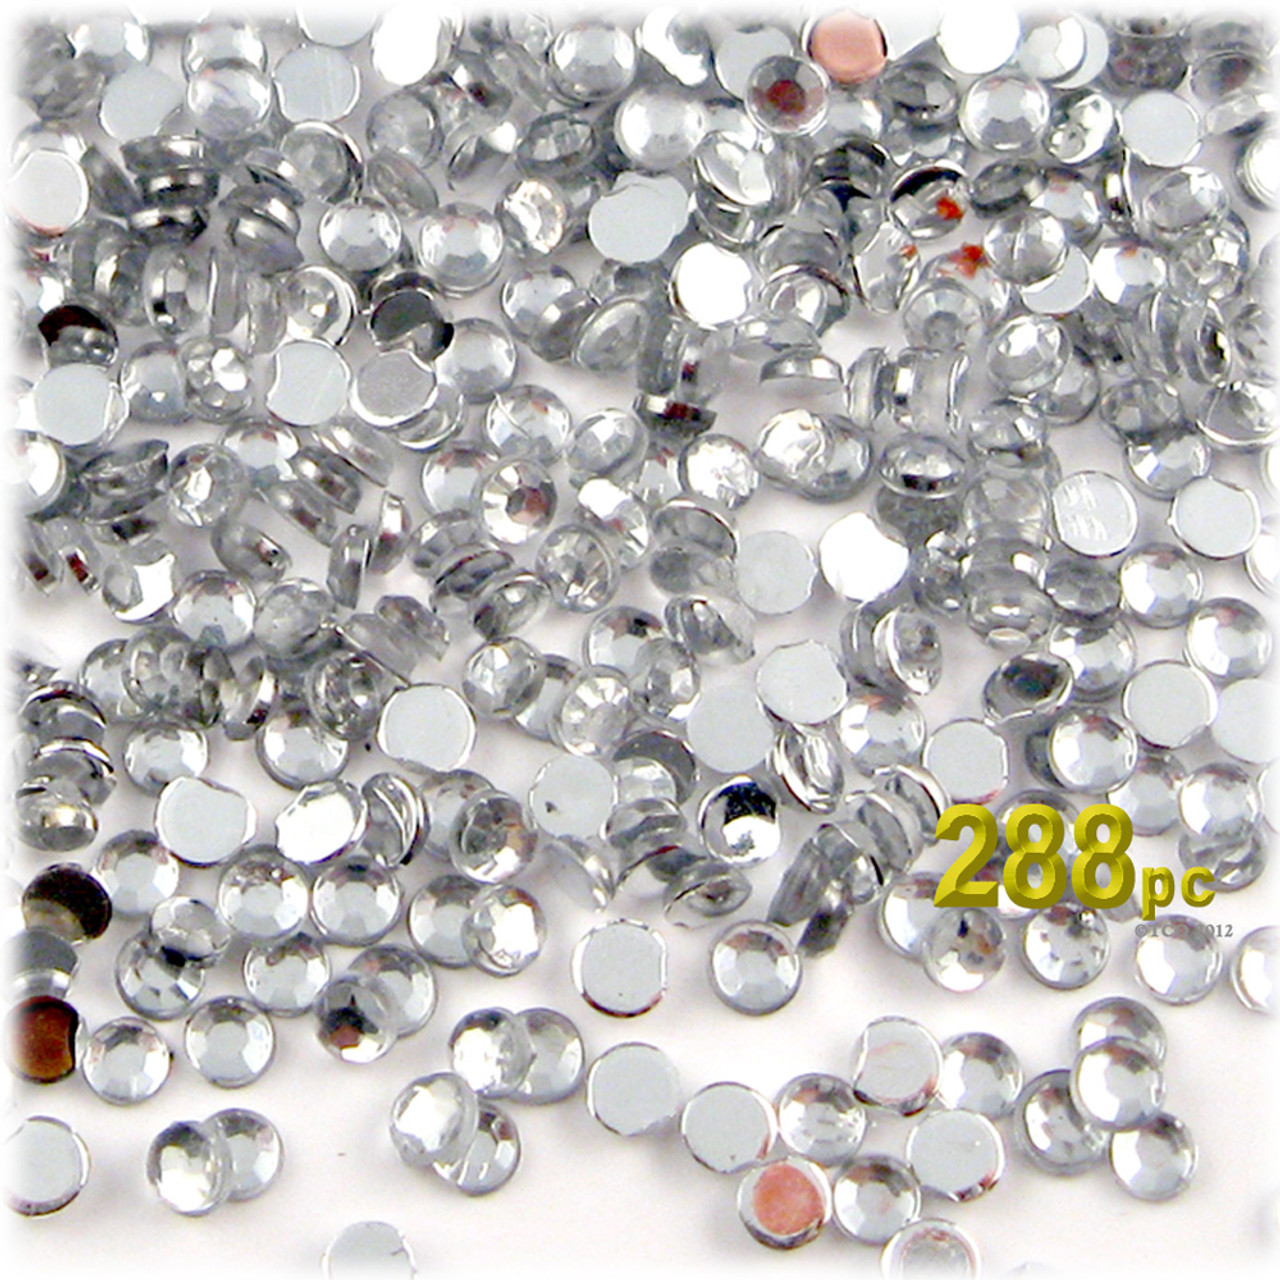 Rhinestones flatback round 4mm 288 pc clear for Rhinestone jewels for crafts